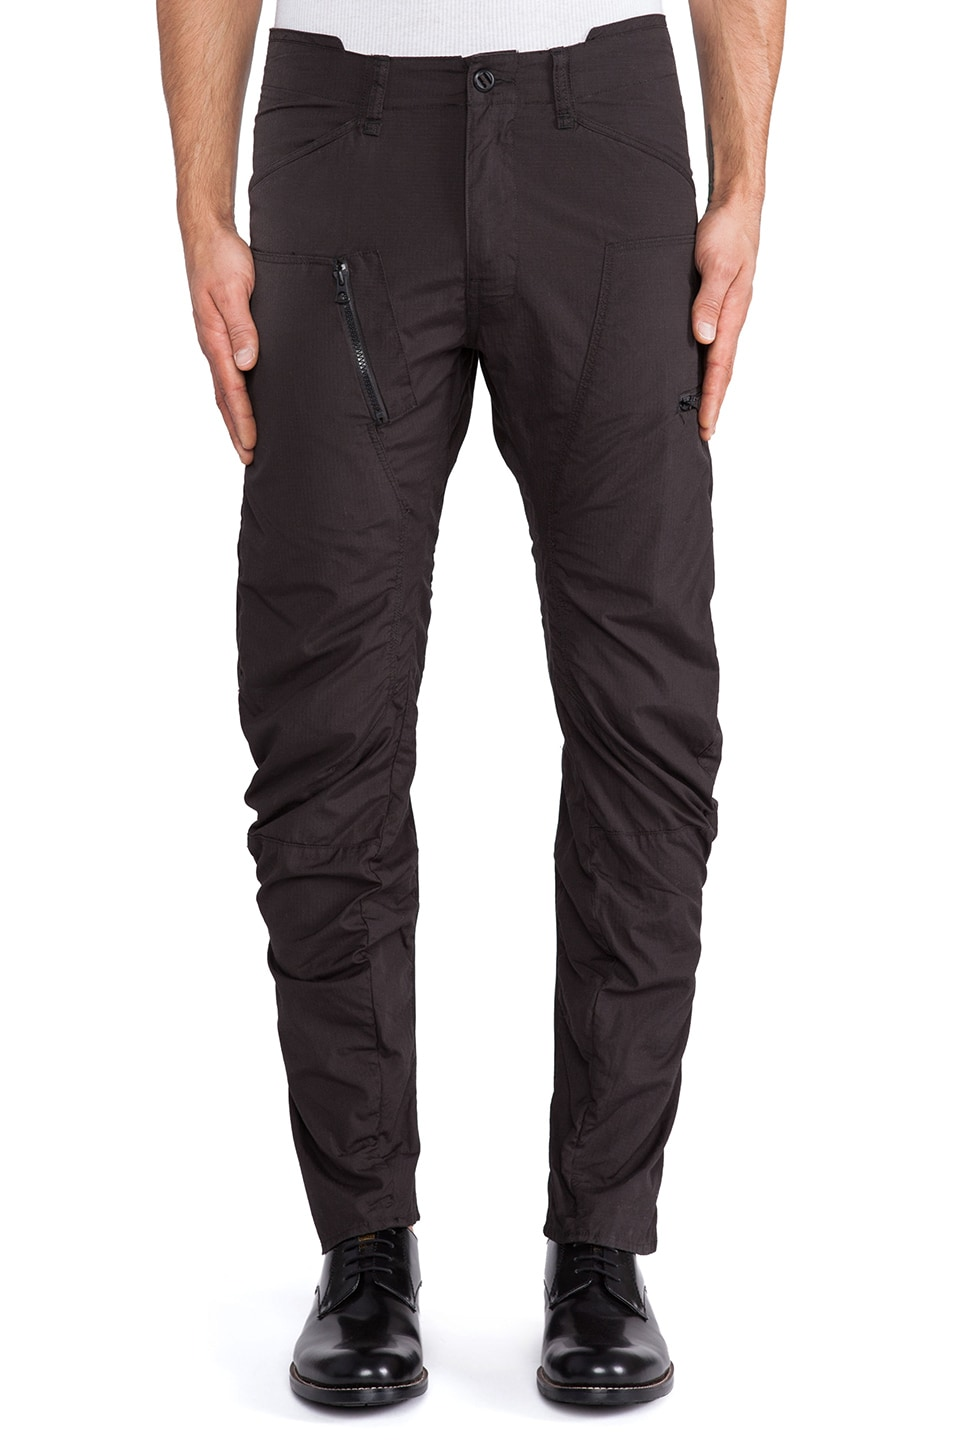 G-Star Powel 3D Tapered Cargo Pant in Raven